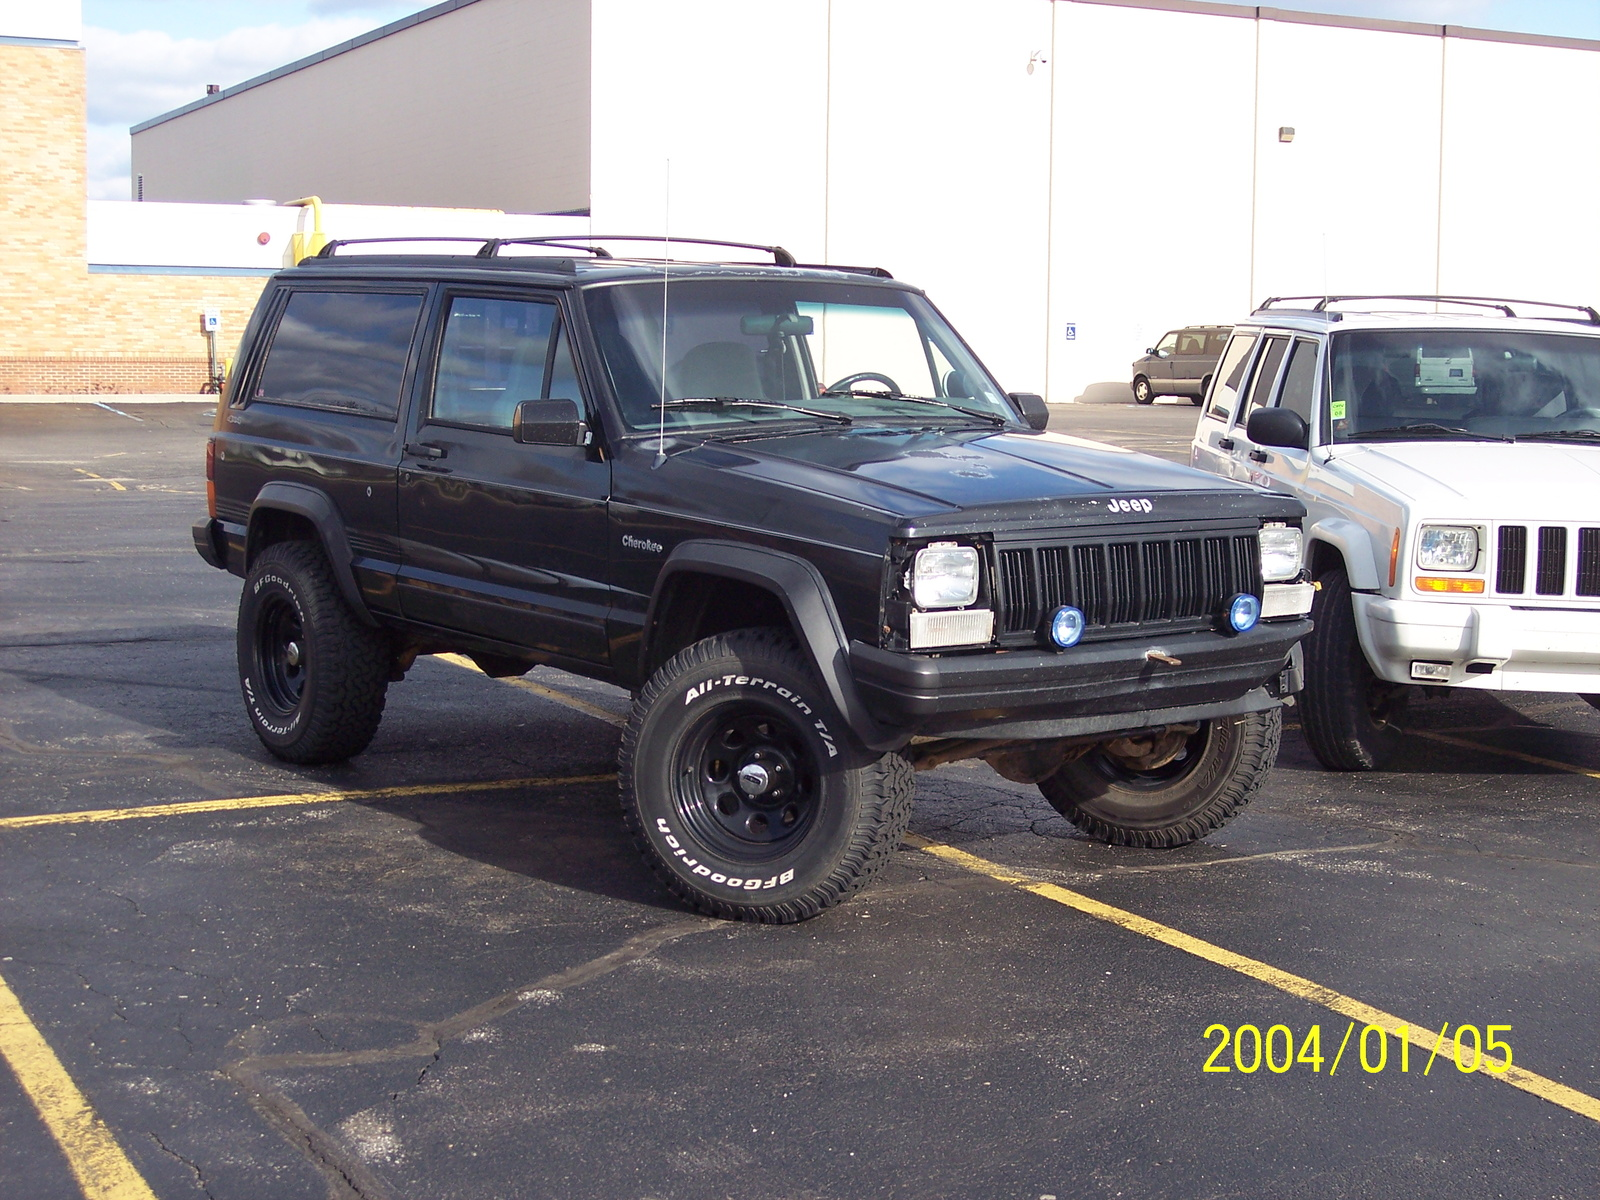 1996 jeep cherokee information and photos zombiedrive. Black Bedroom Furniture Sets. Home Design Ideas